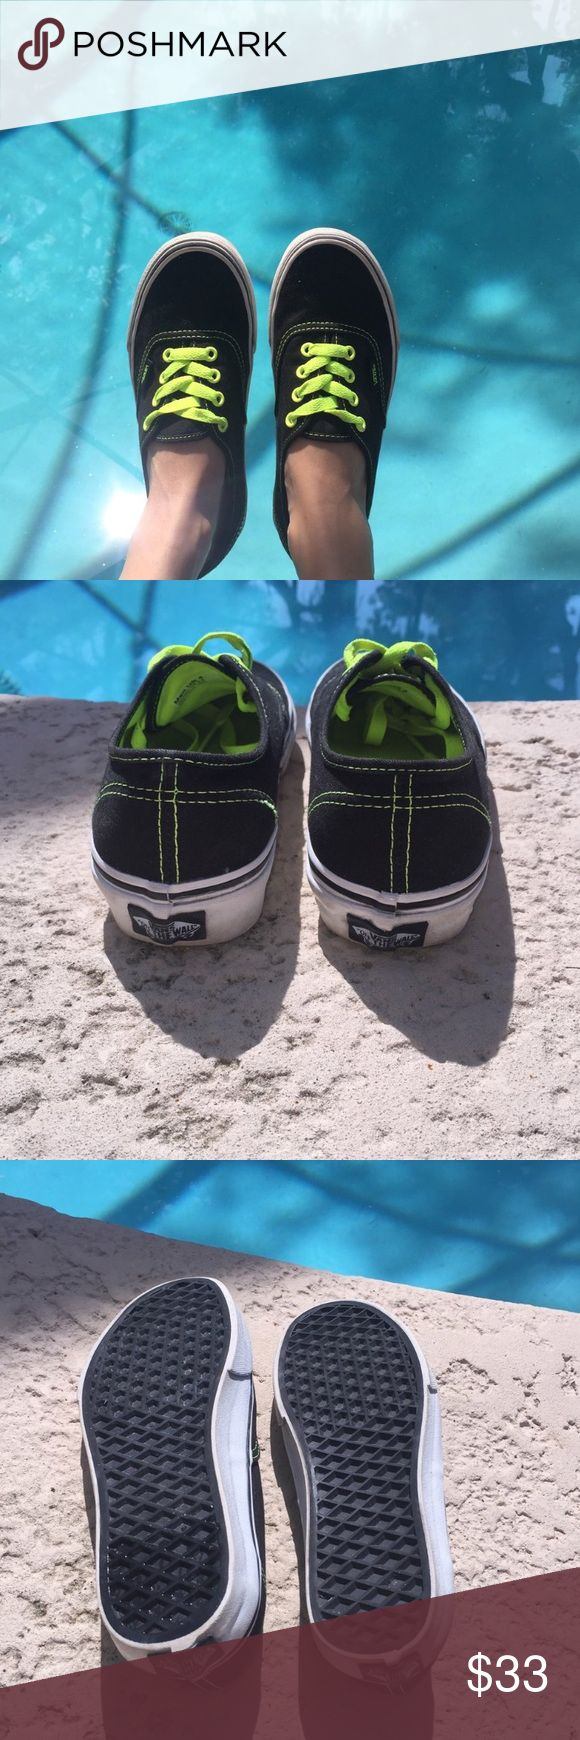 Black & Neon Classic Vans Classic black and #neon #Vans. Worn no more than twice they are in great condition! Vans Shoes Sneakers